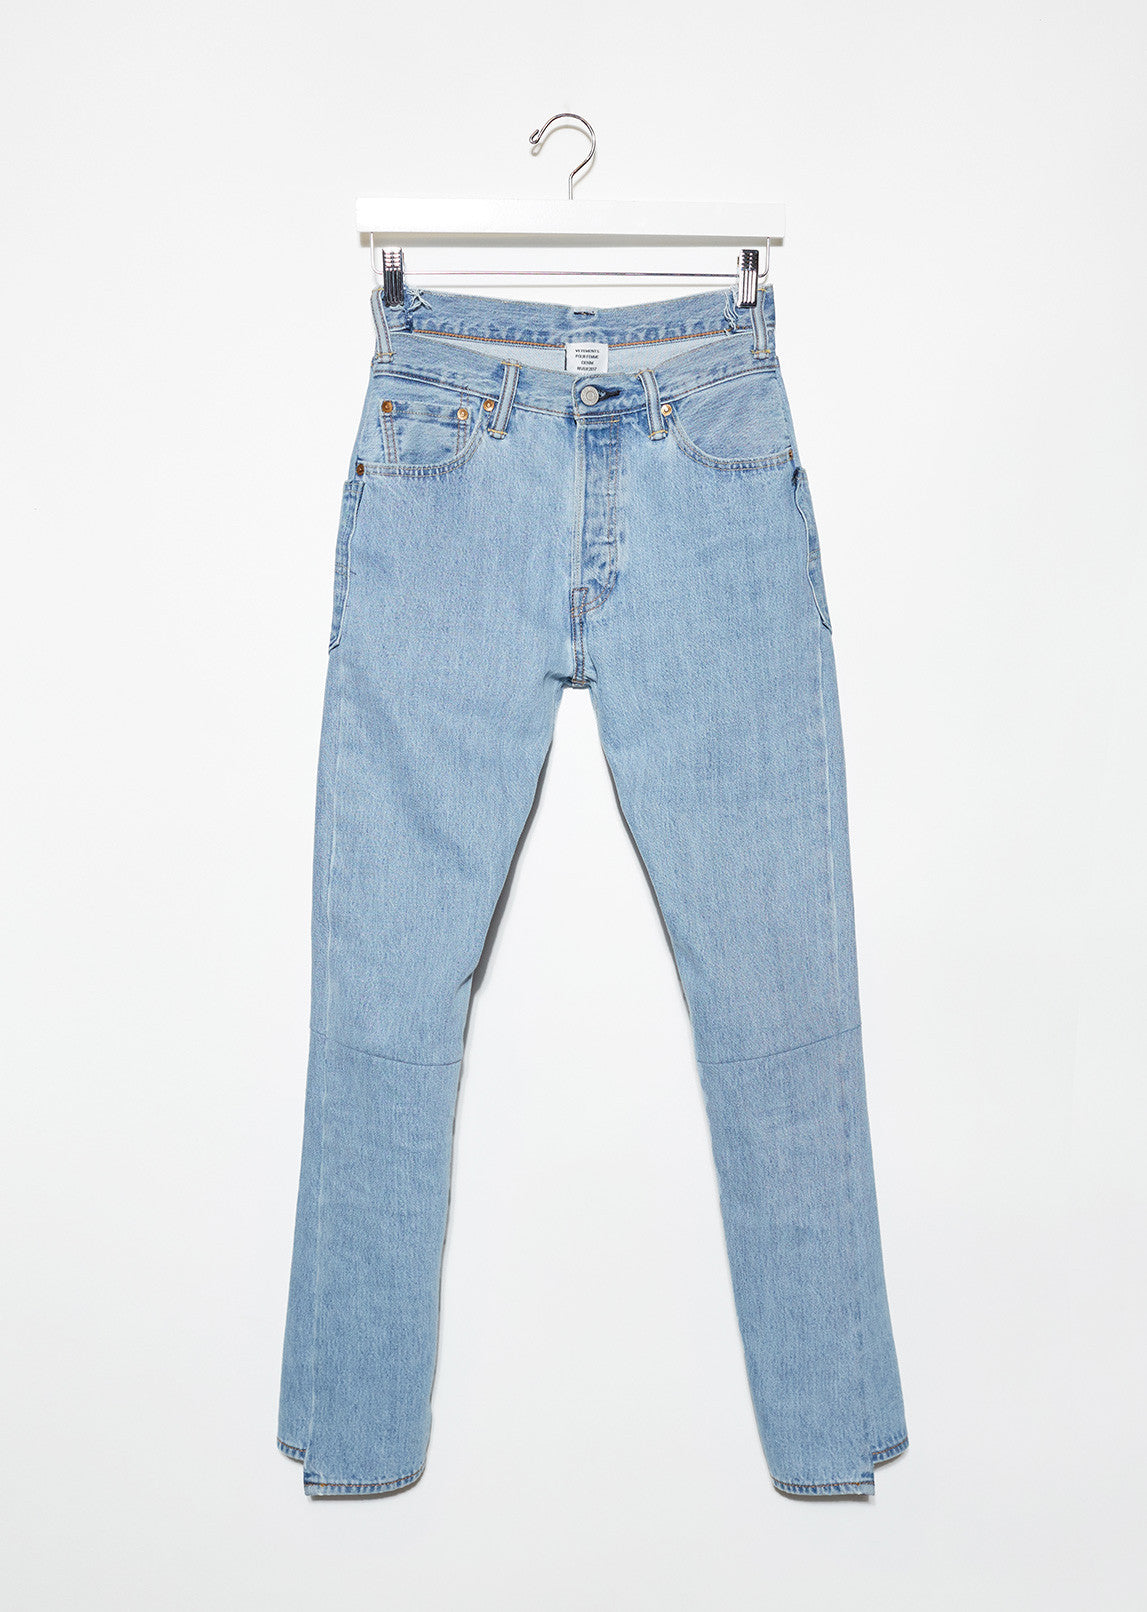 Reworked High Waisted Denim